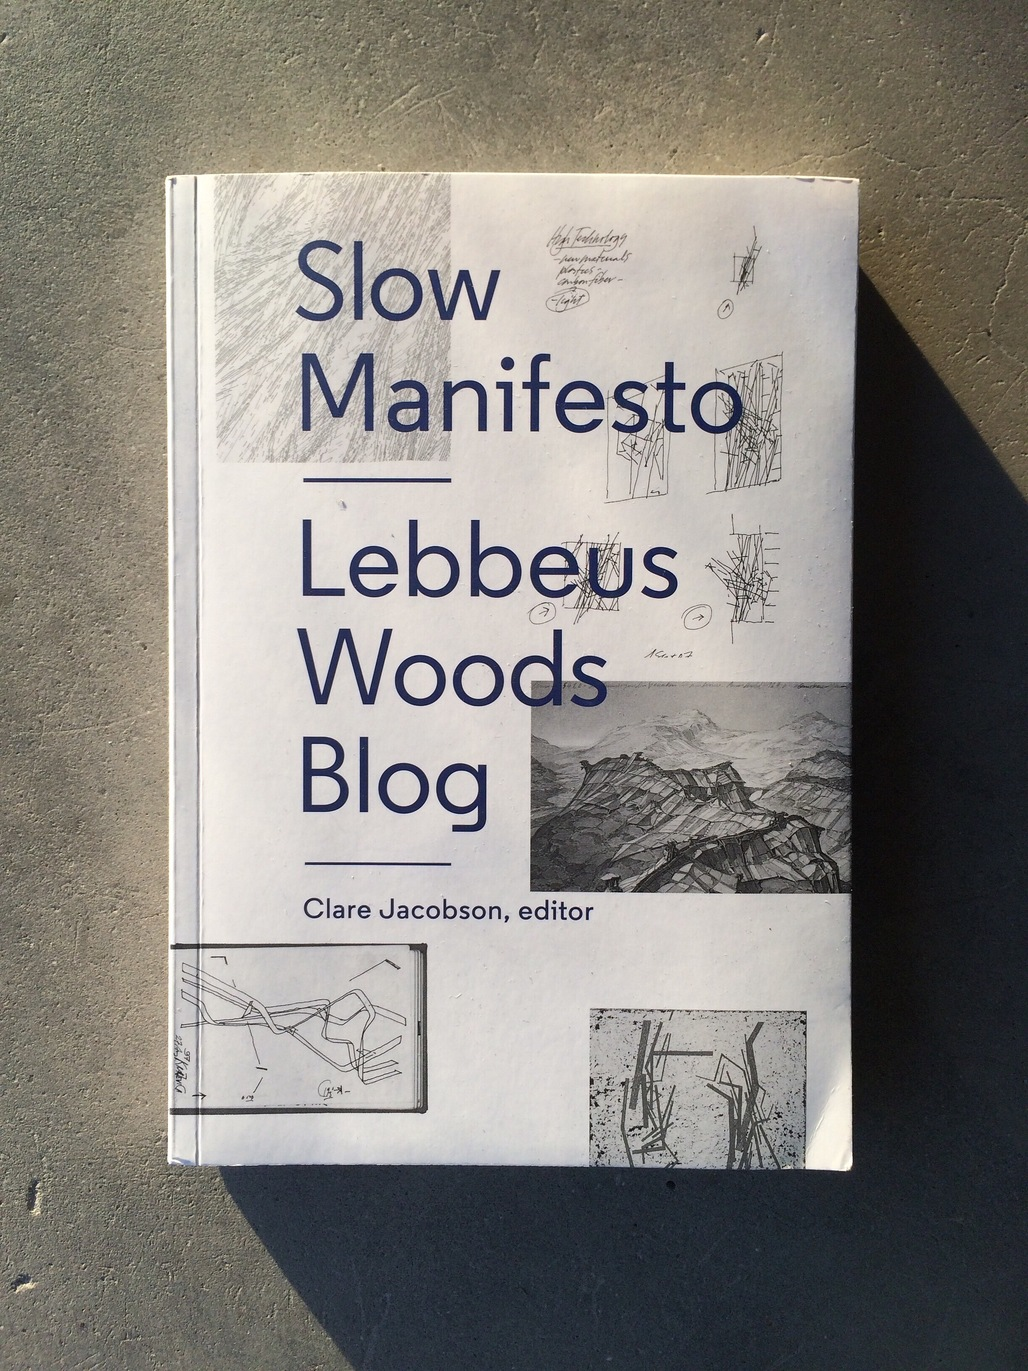 Slow Manifesto: Lebbeus Woods Blog edited by Clare Jacobson, published by Princeton Architectural Press (2015). Photo by Justine Testado.